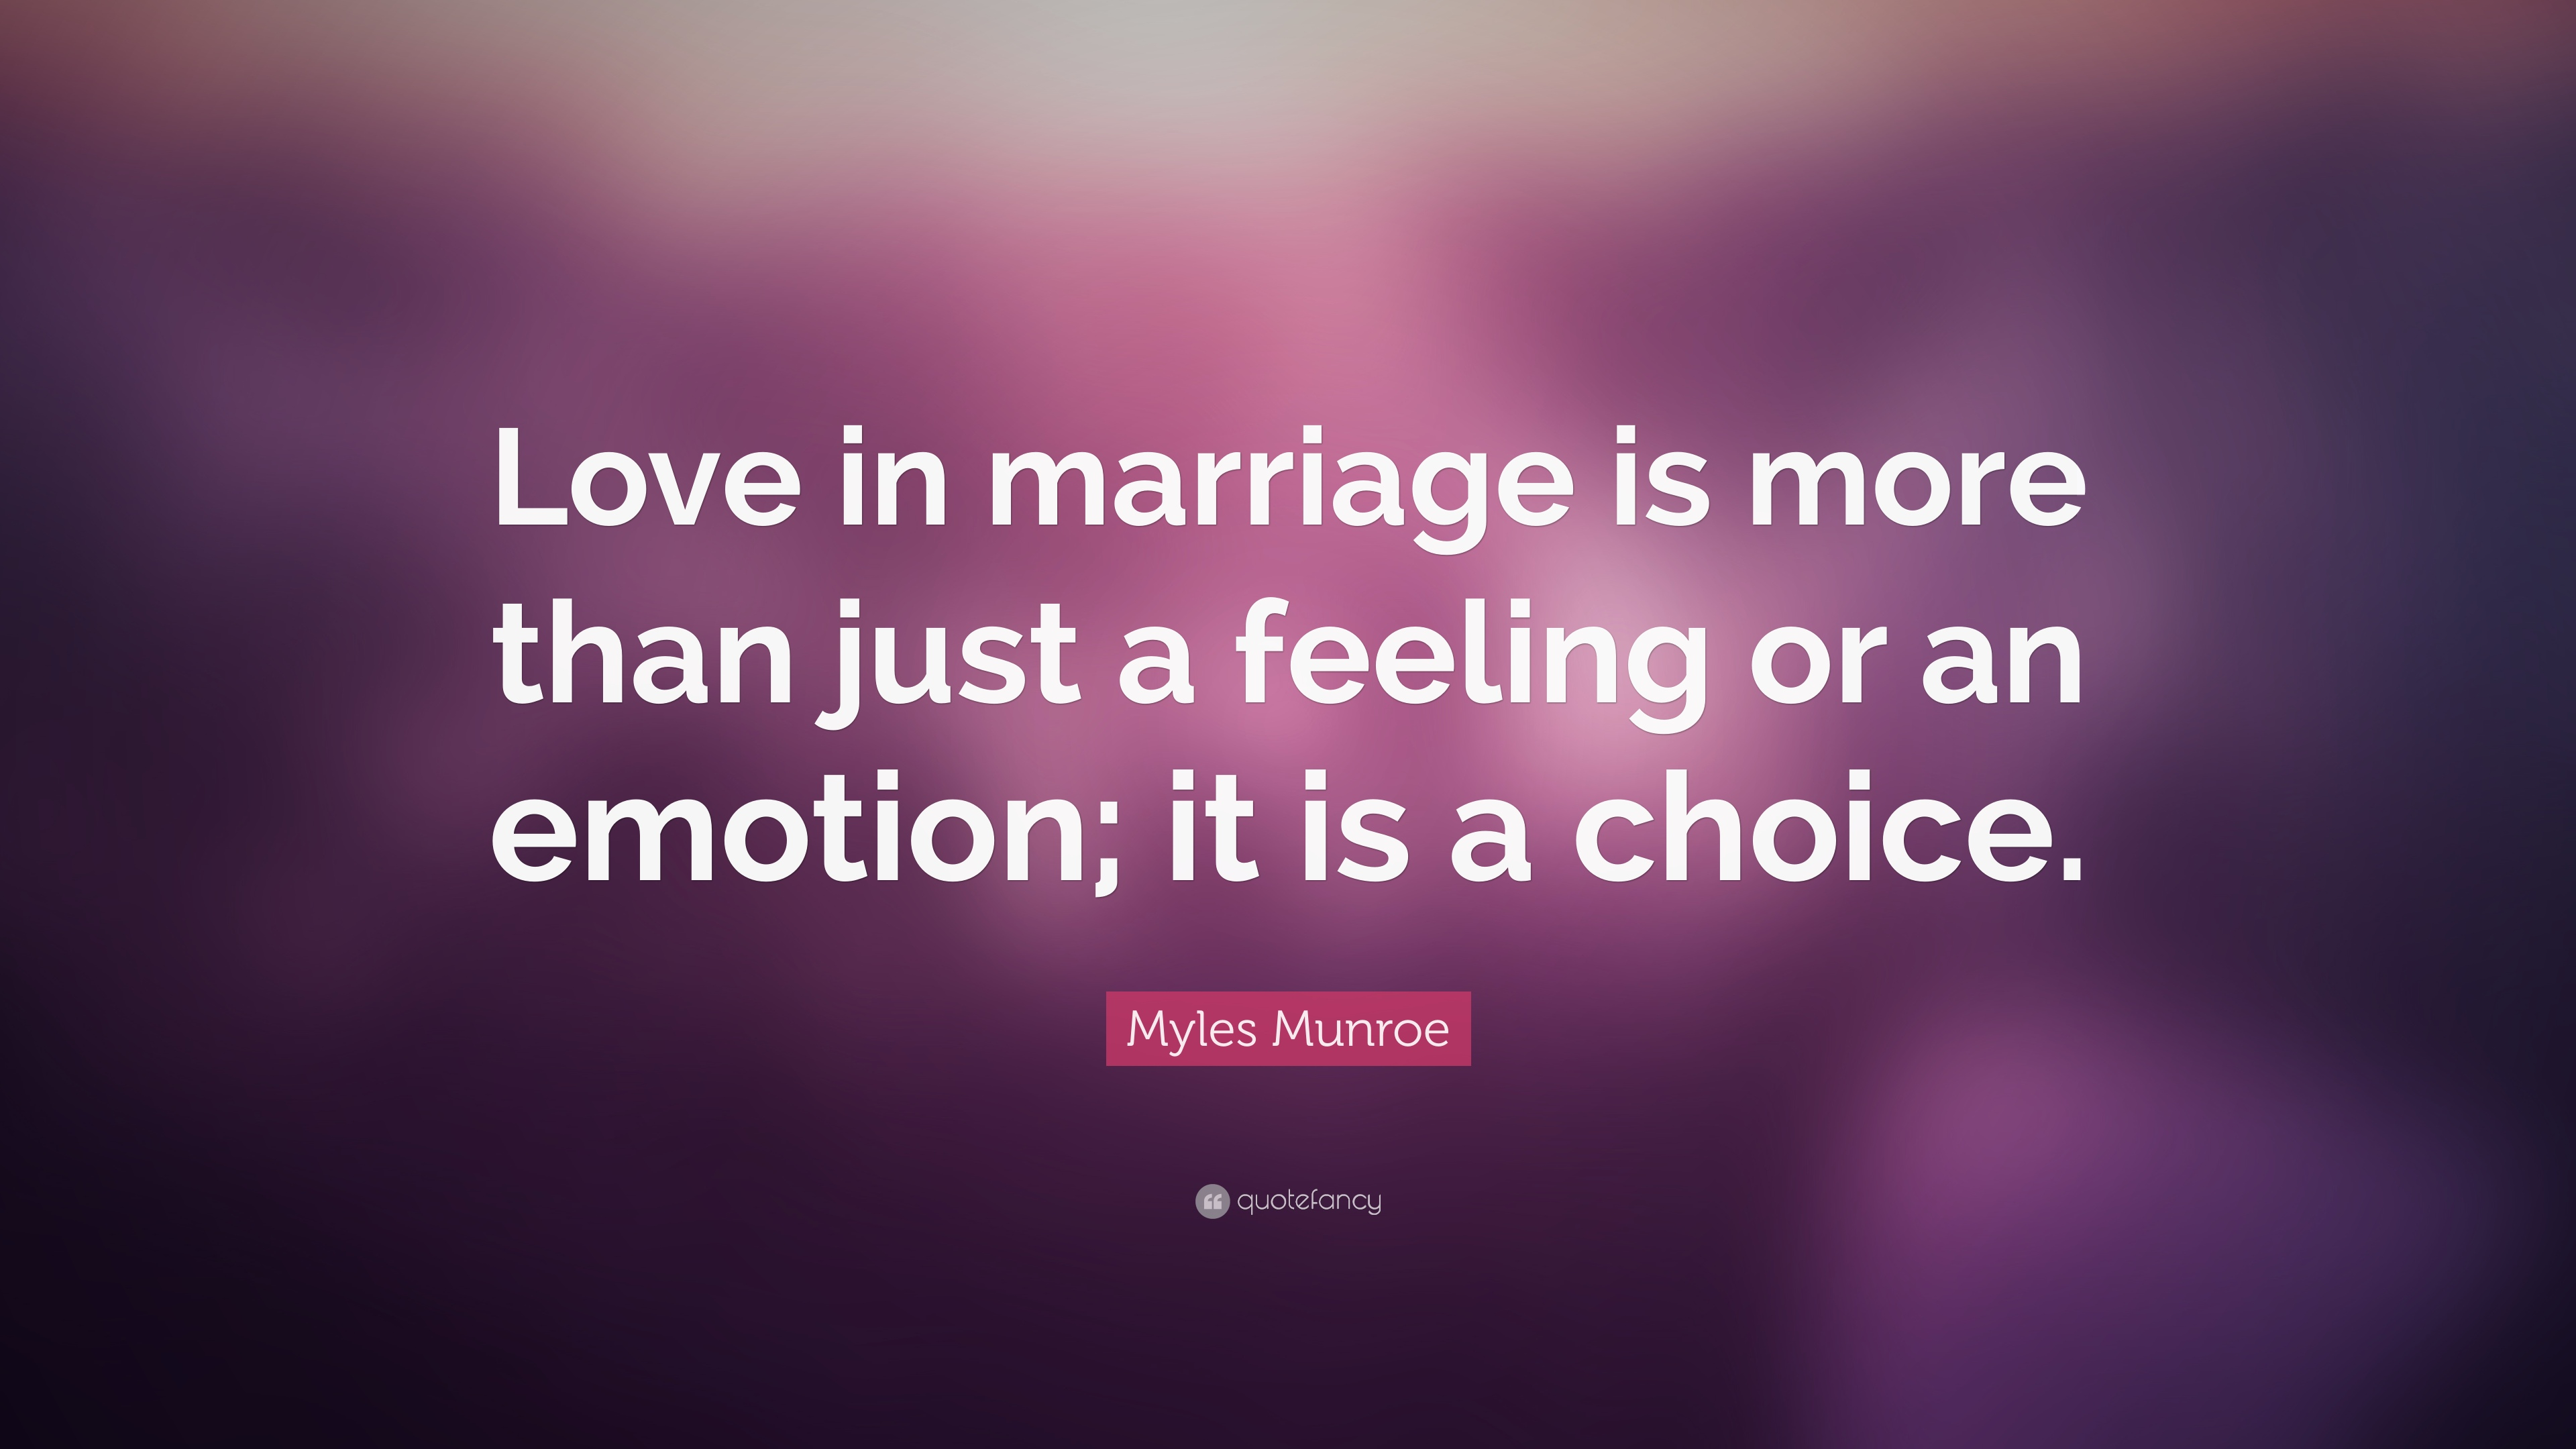 Myles Munroe Quote Love In Marriage Is More Than Just A Feeling Or An Emotion It Is A Choice 7 Wallpapers Quotefancy